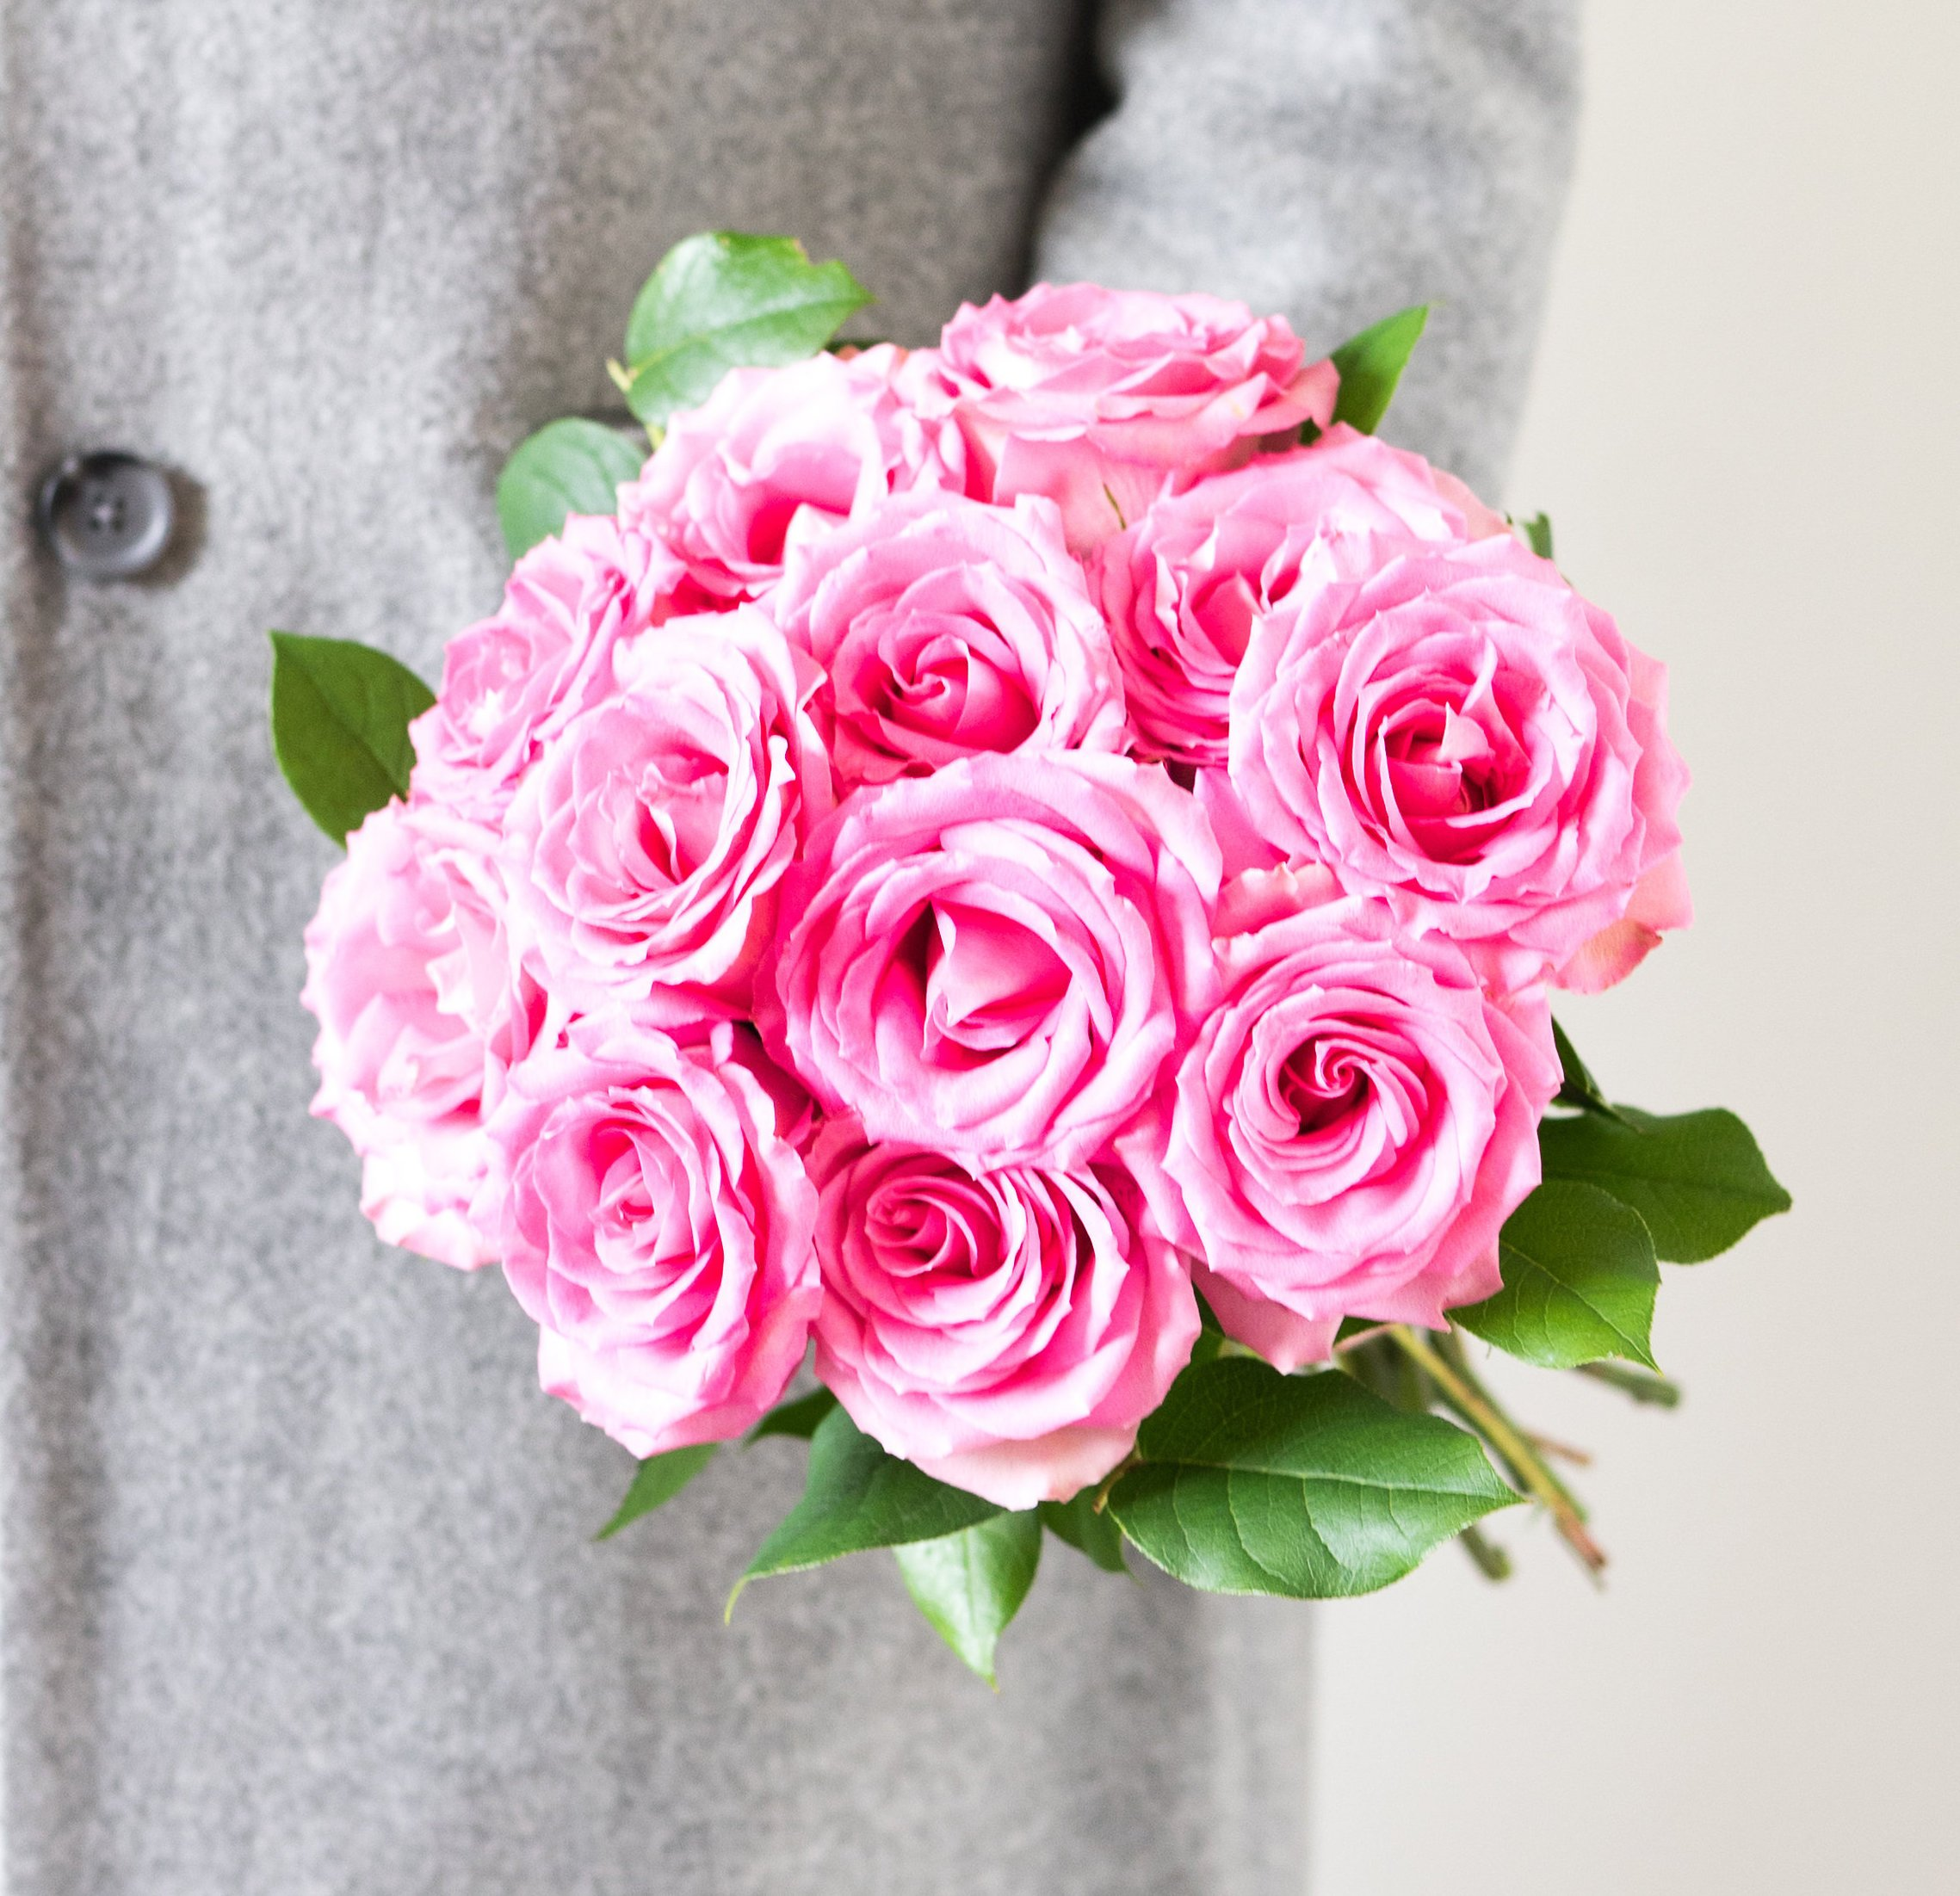 Flowers - One Dozen Pink Roses with Chocolates and a Bear (Free Vase Included) by From You Flowers (Image #1)